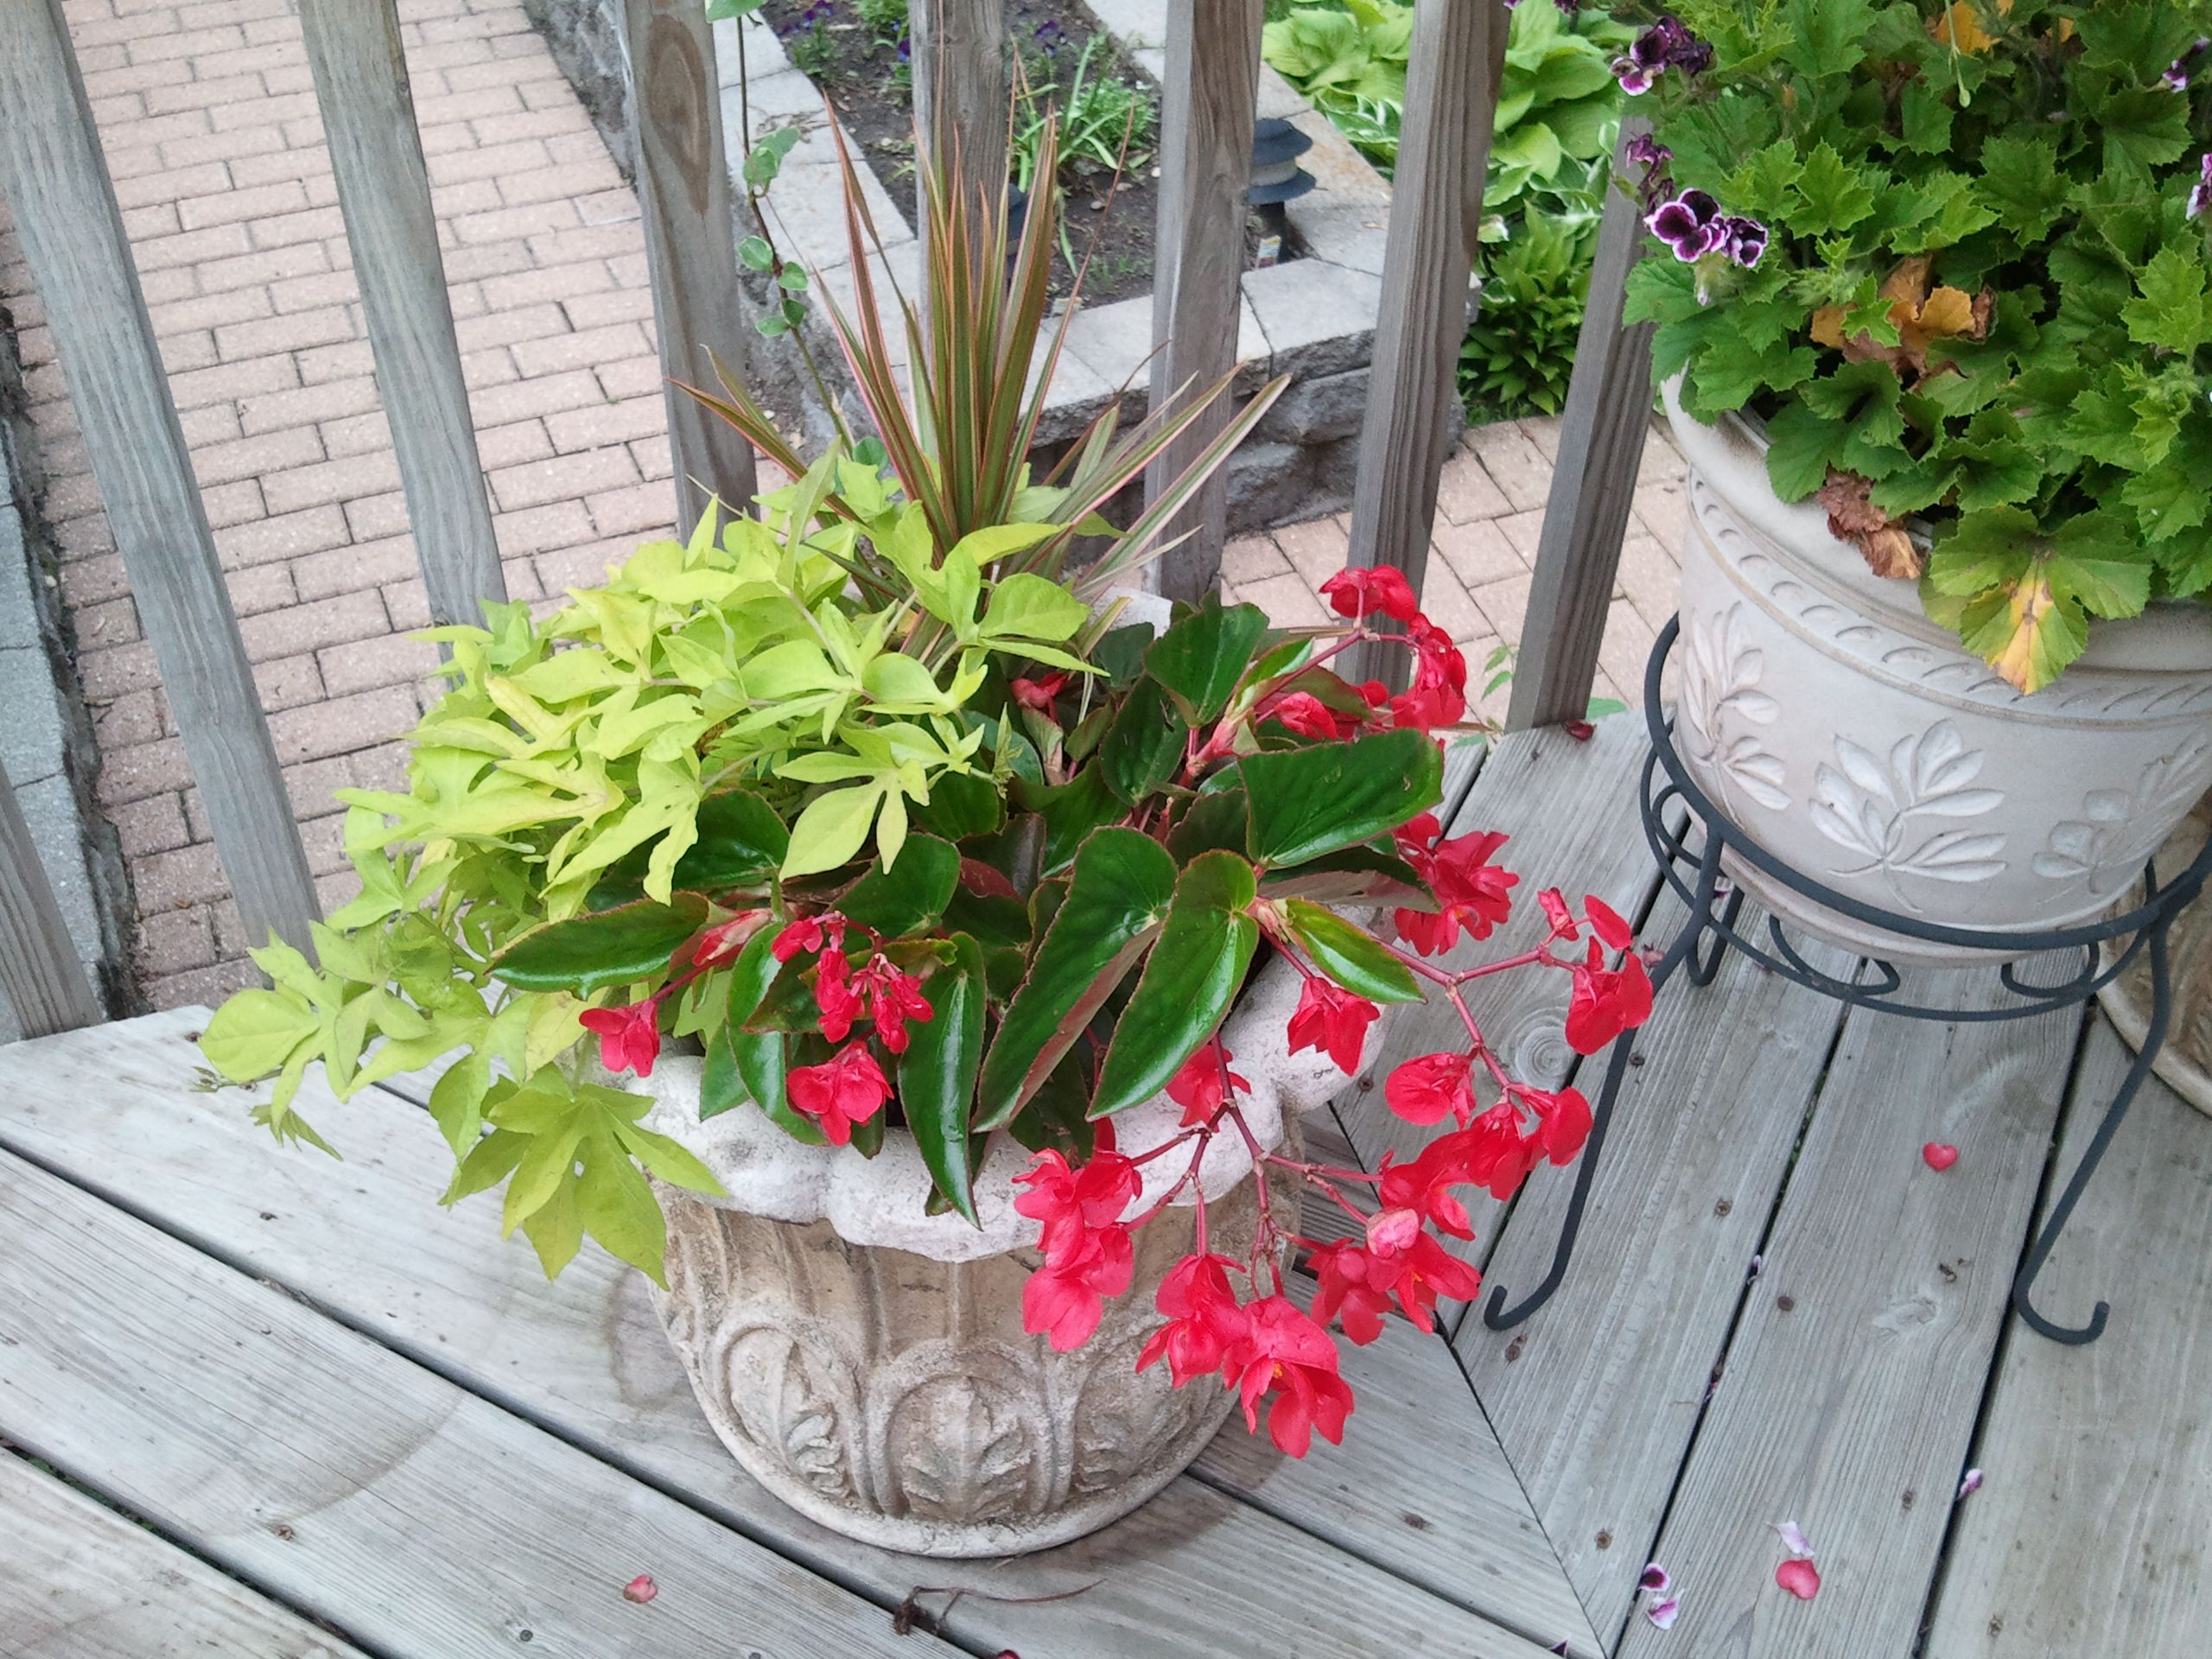 another potted plant for my garden